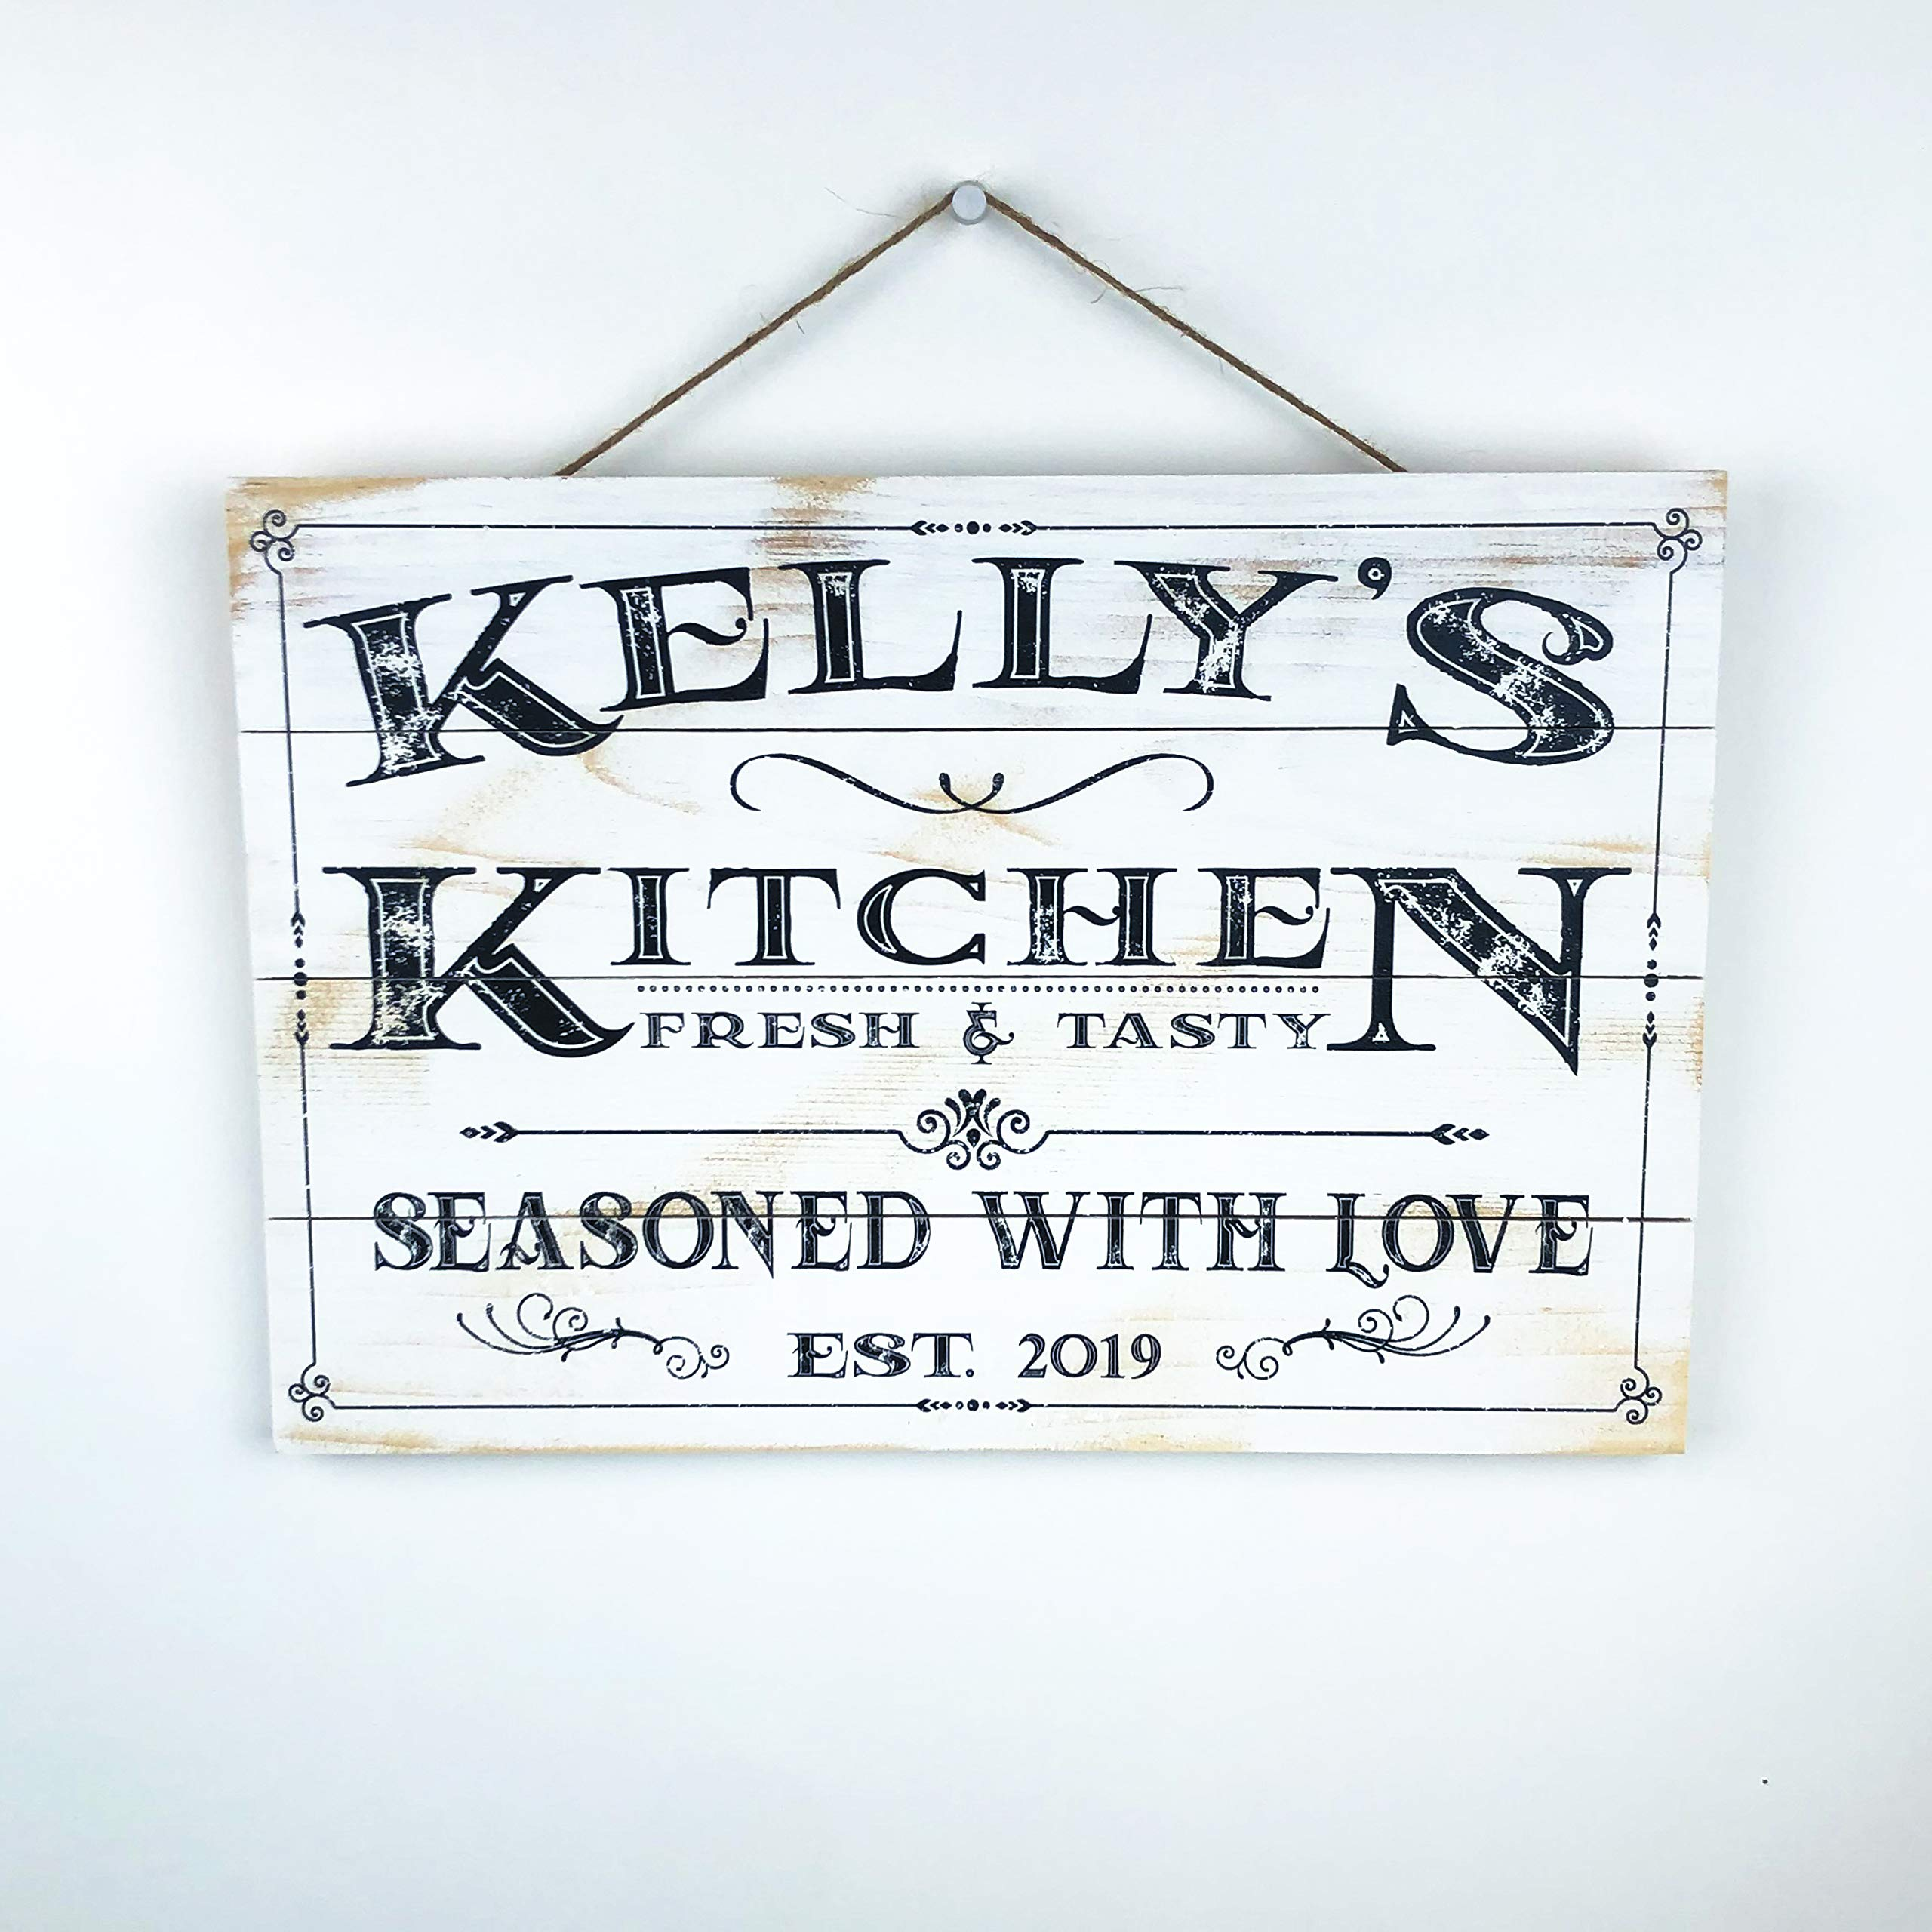 Artblox Personalized Wooden Kitchen Wall Decor | Farmhouse Kitchen Decor | Last Name Signs for Home | Family Sign | Housewarming Gifts | Wedding Gift - (16x12) - White by Artblox